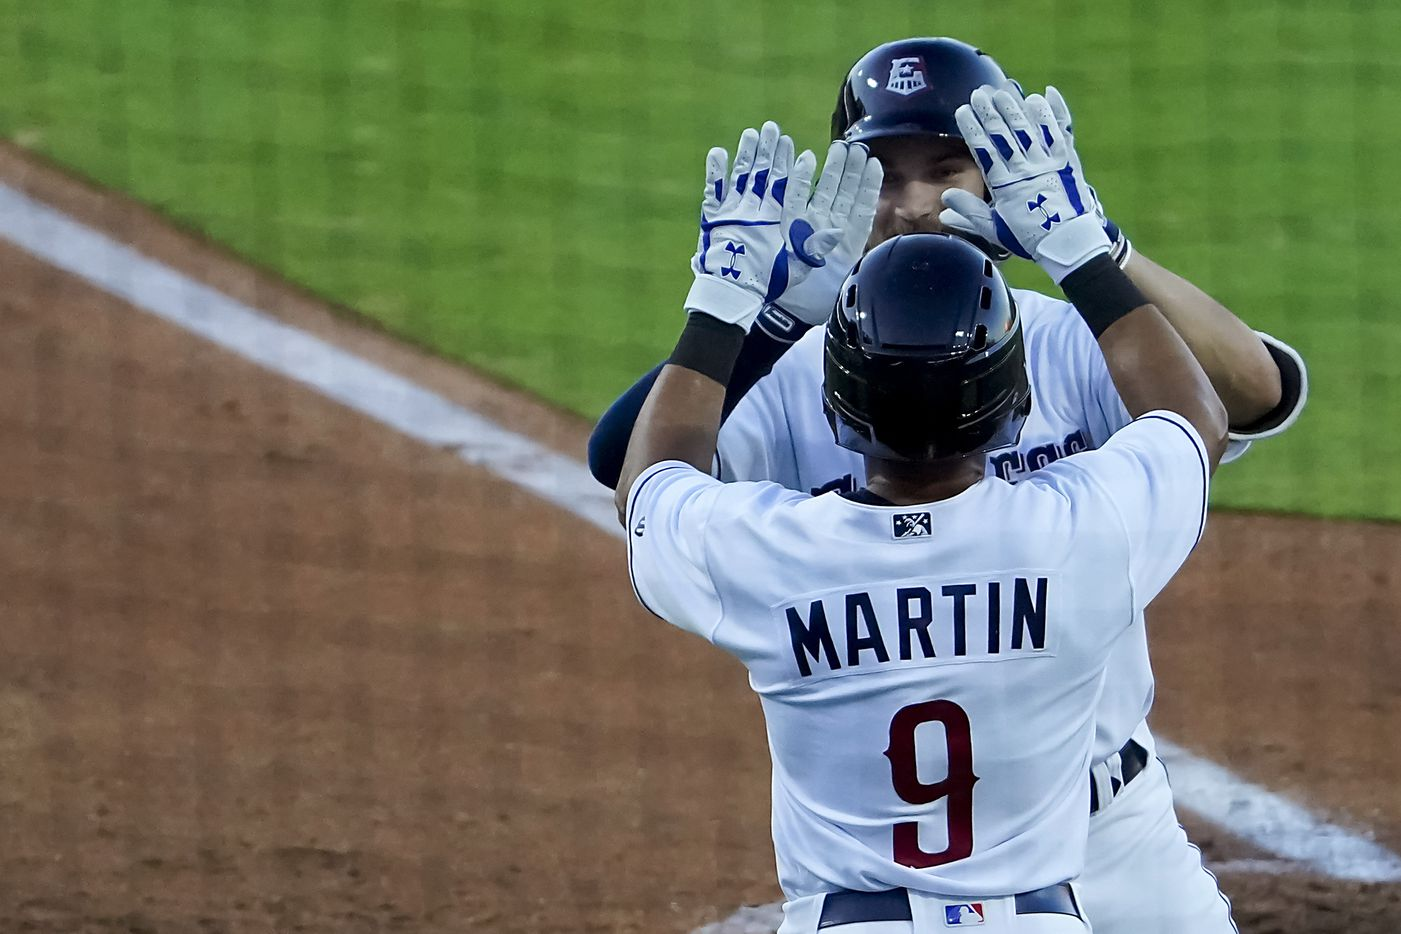 Round Rock Express infielder Charles Leblanc celebrates with outfielder Jason Martin after hitting a 2-run home run during the second inning against the Oklahoma City Dodgers at Dell Diamond on Thursday, May 6, 2021, in Round Rock, Texas.